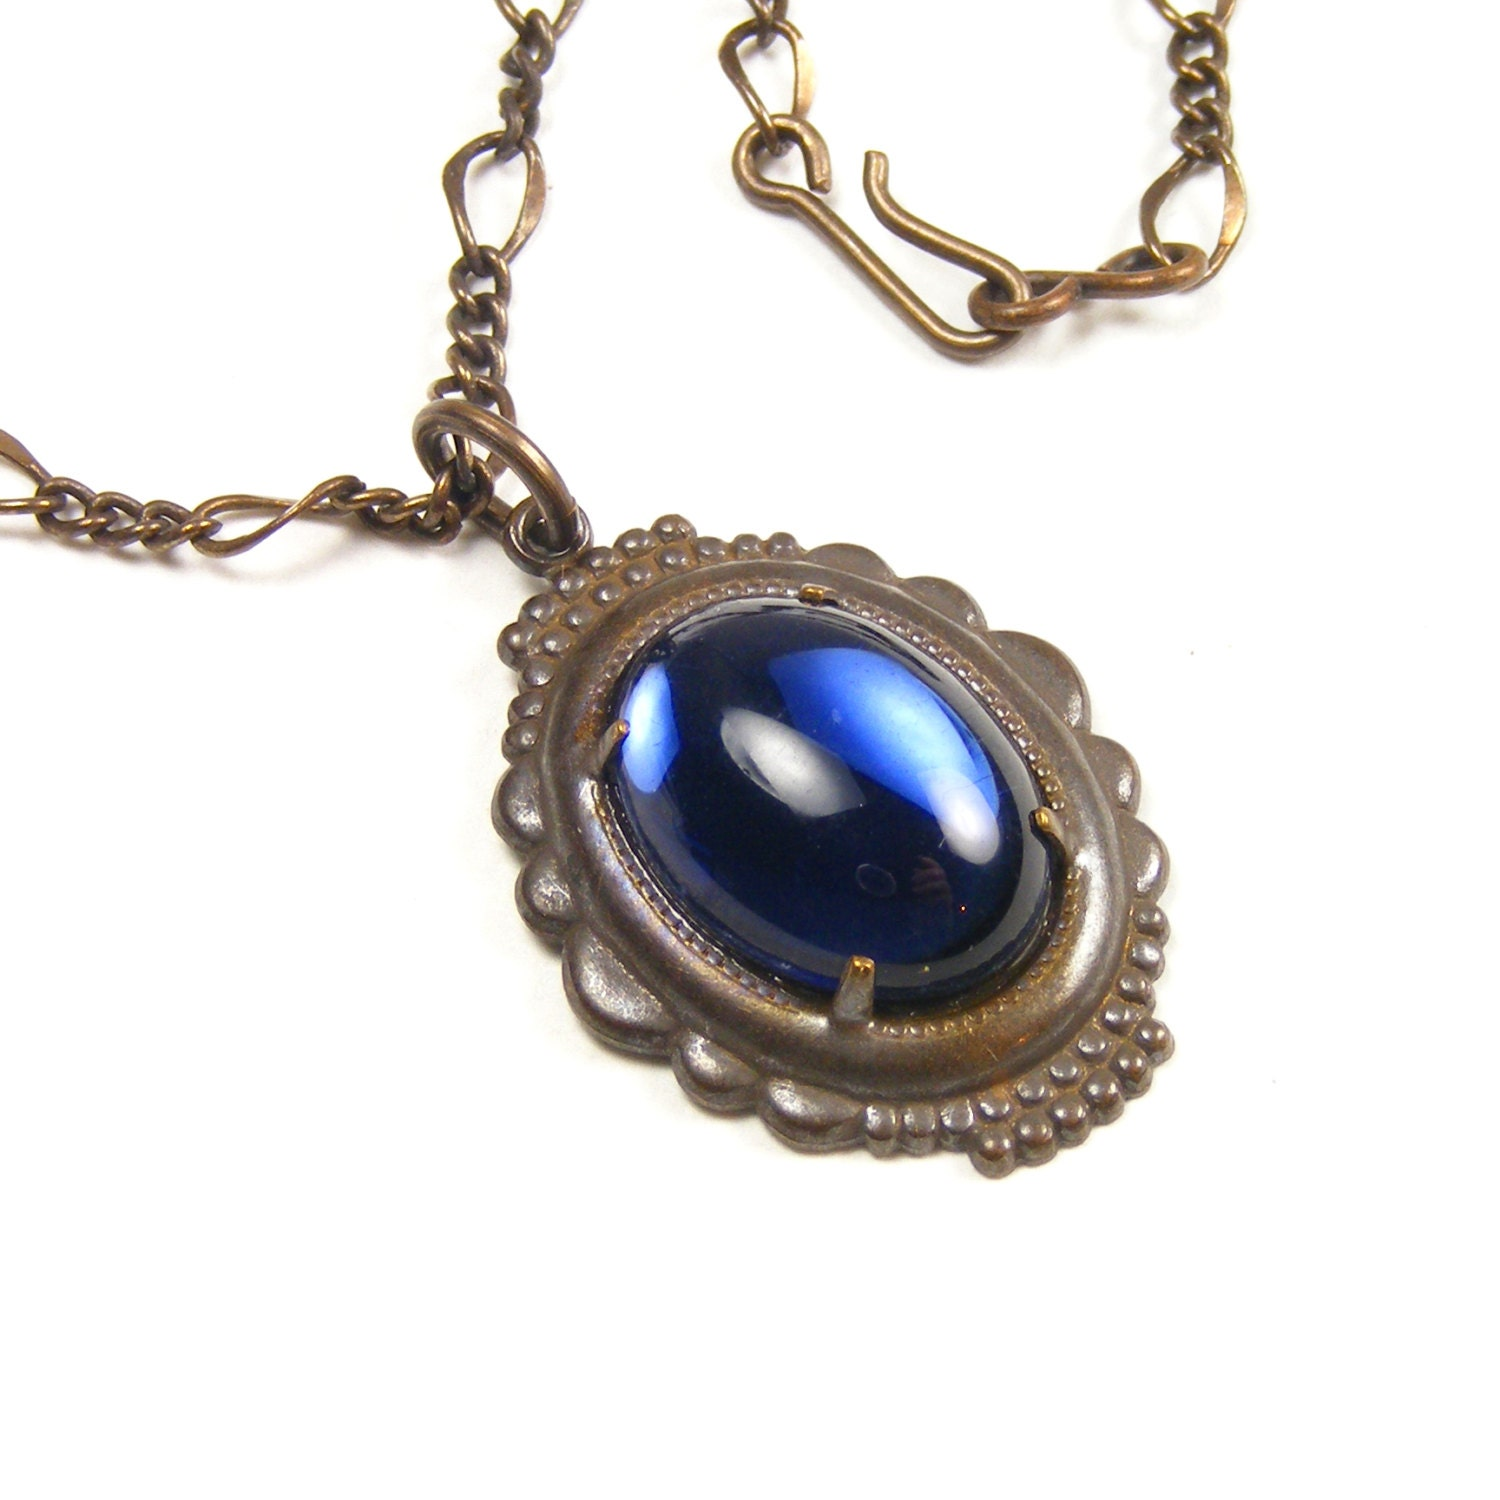 Deep Sapphire Blue Pendant, Edwardian Style Vintage Glass Necklace, Estate Style Jewelry, Inspired by Downton Abbey